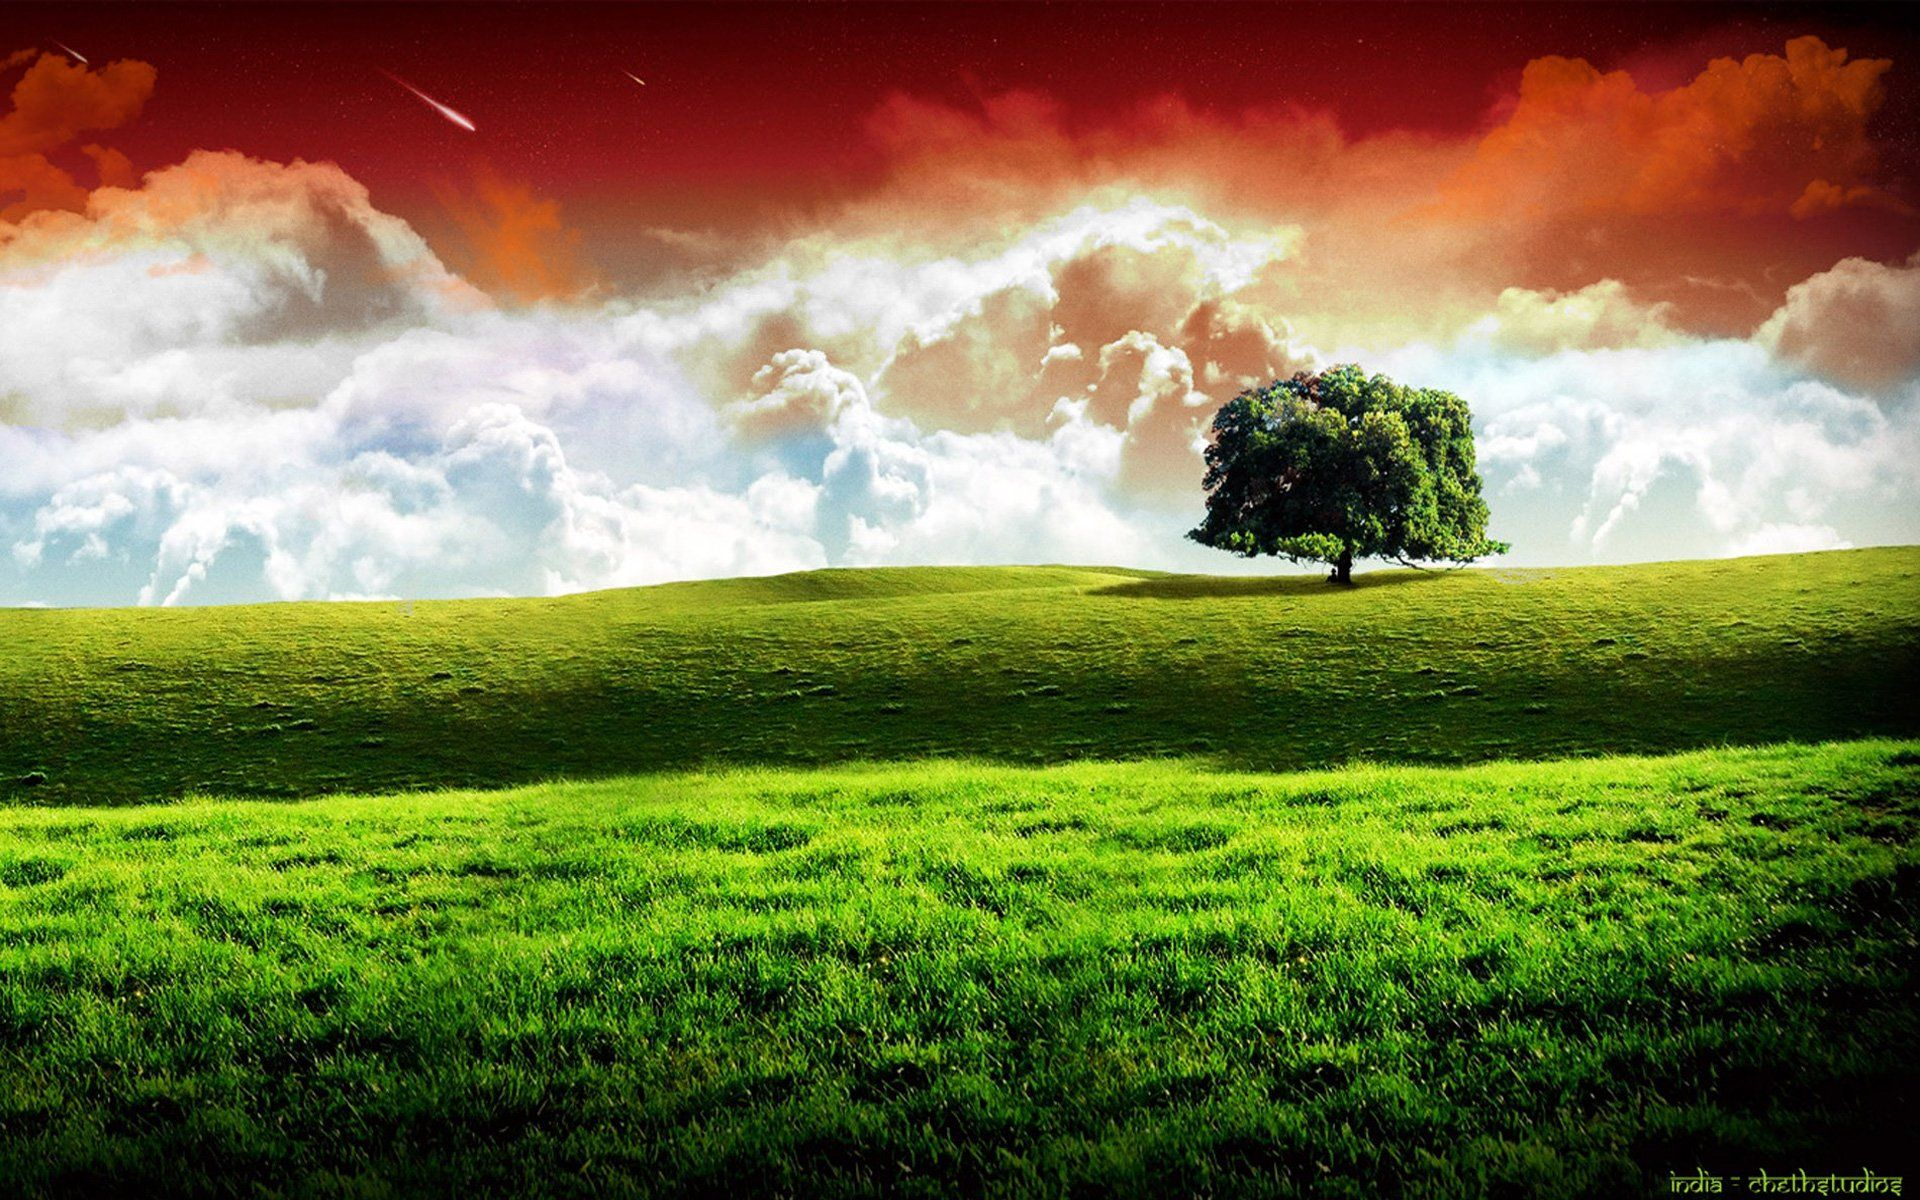 Hd India Wallpapers The Best And The Most Attractive Indian 1024 640 Indian Wallpaper 45 Wallpapers Scenery Wallpaper Beautiful Nature Scenes Nature Scenes